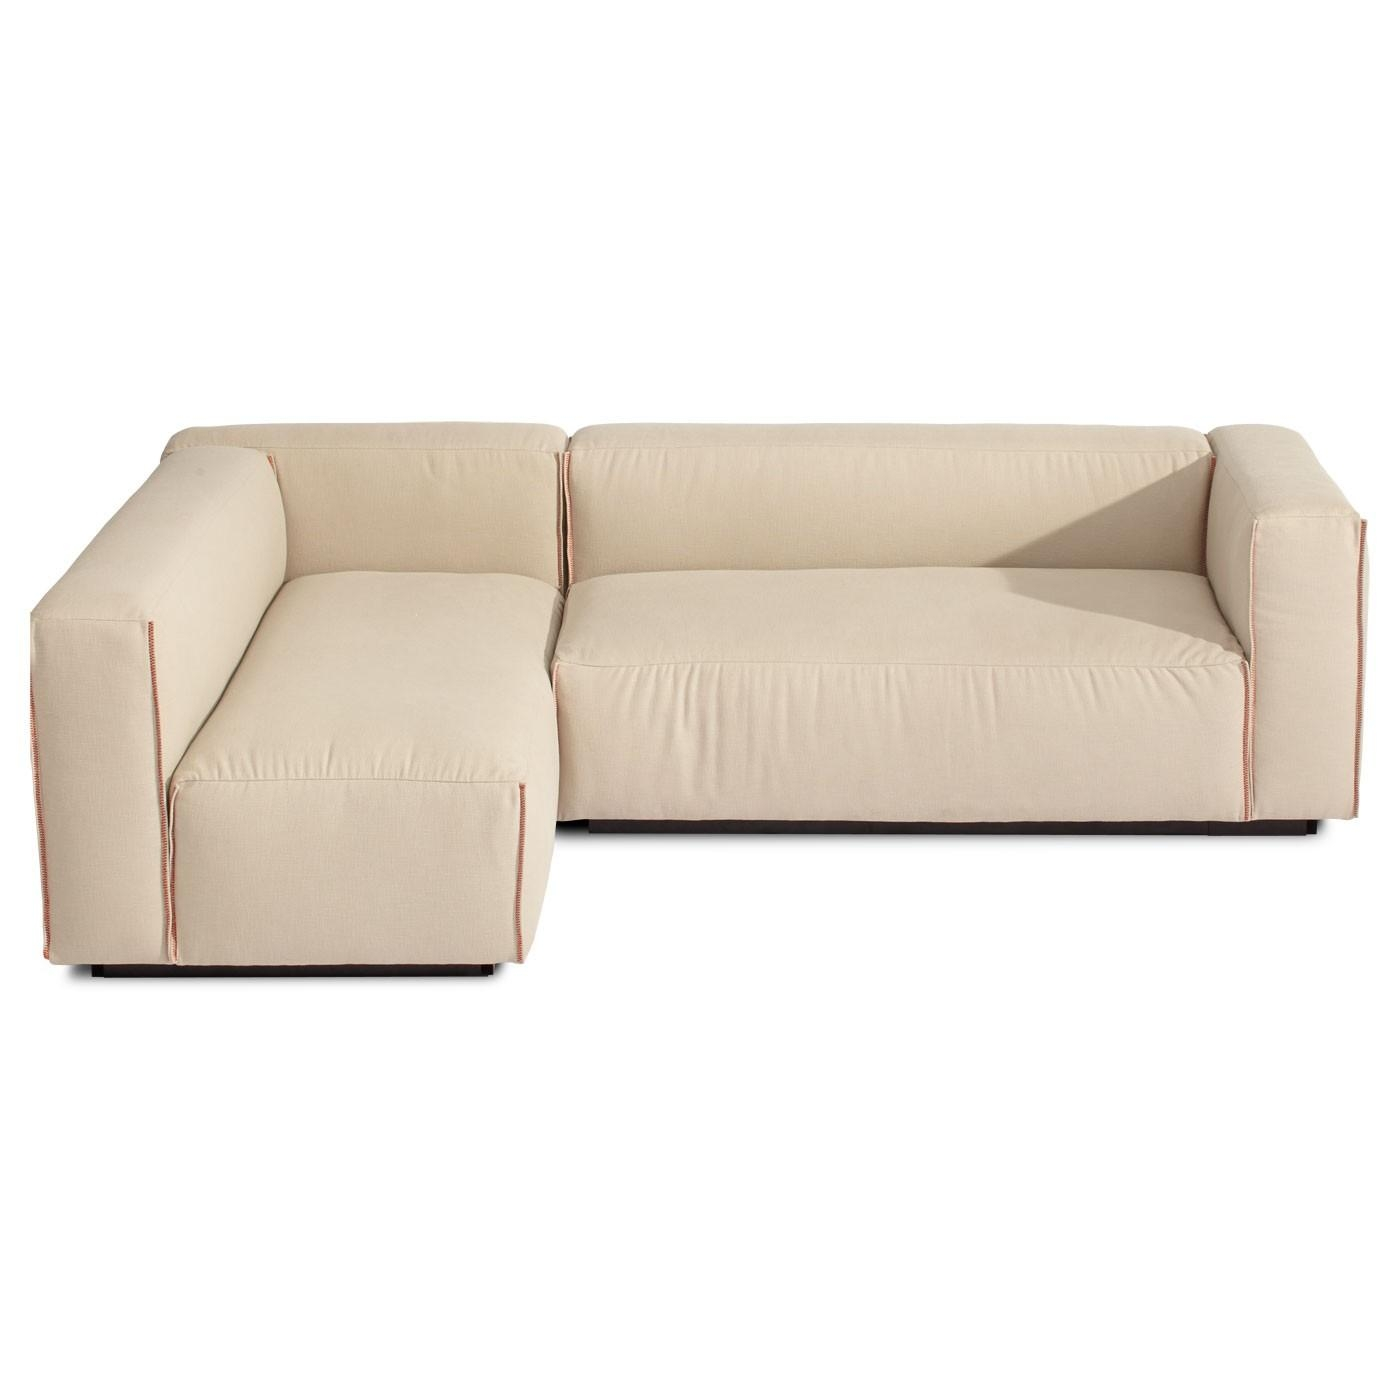 Sofas Center : Small Curved Sofa Exceptional Pictures Concept In Sectional Small Space (Image 19 of 20)